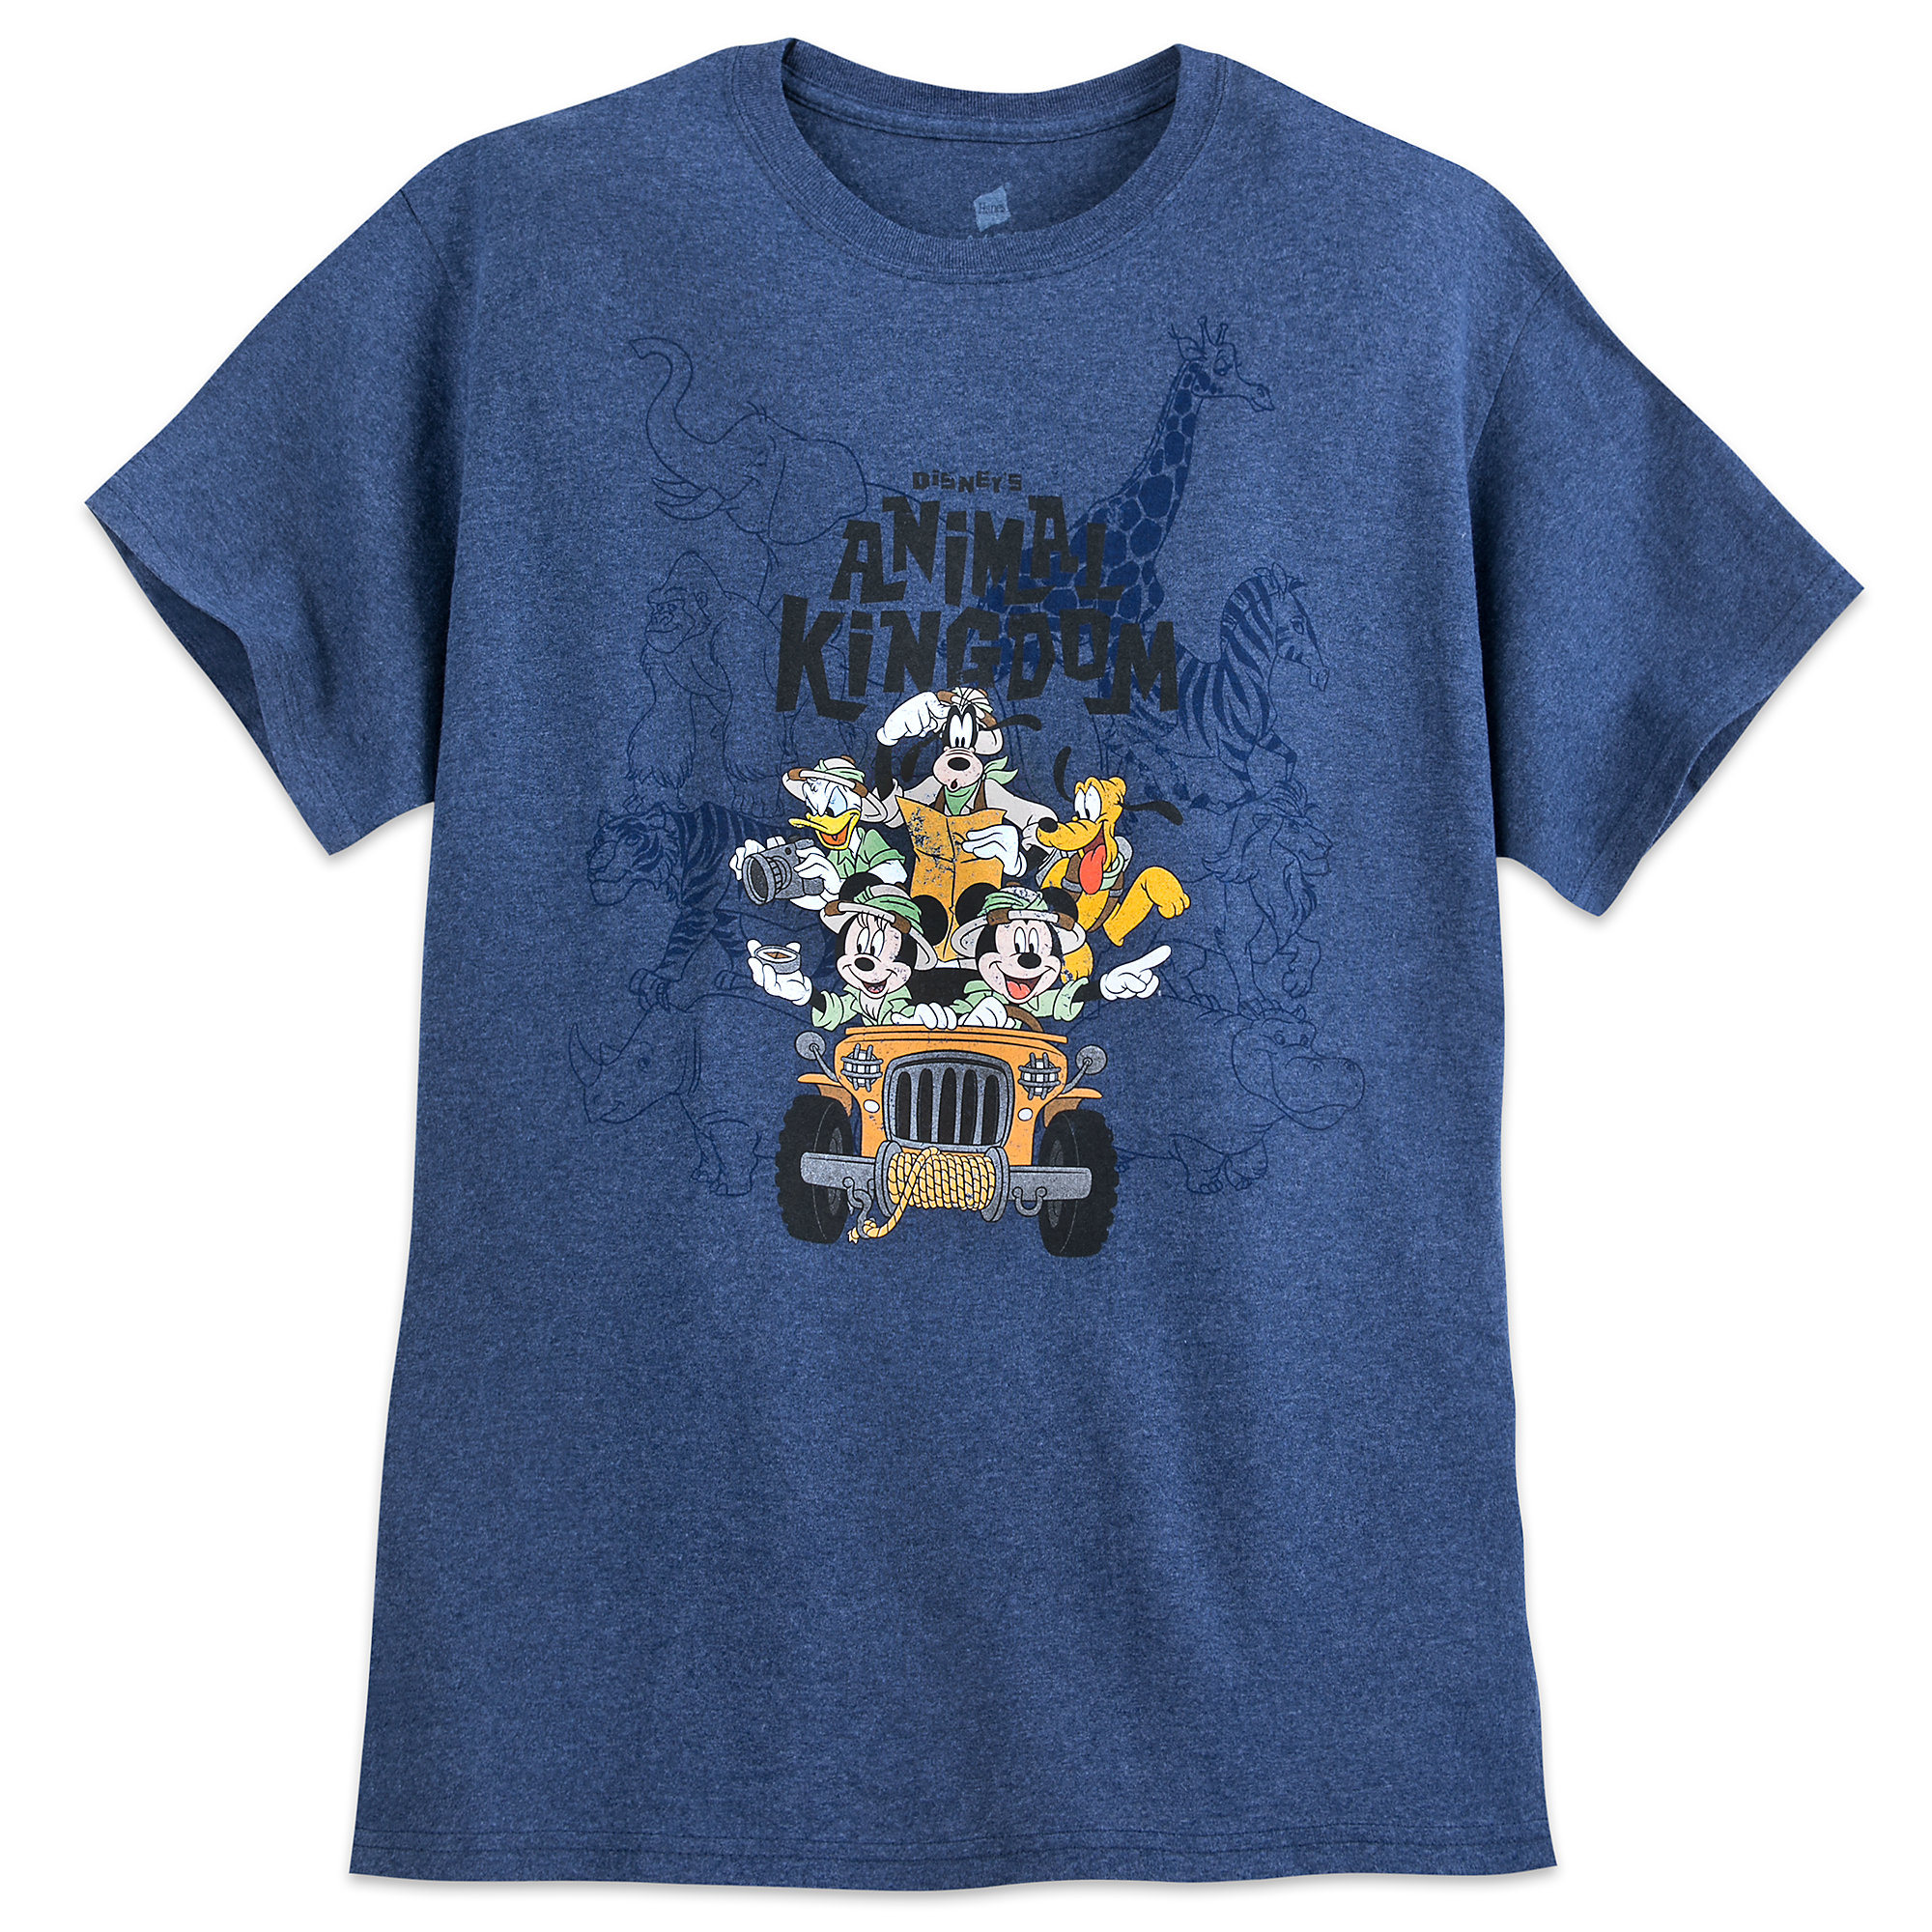 Mickey Mouse and Friends Safari T-Shirt for Adults - Disney's Animal Kingdom